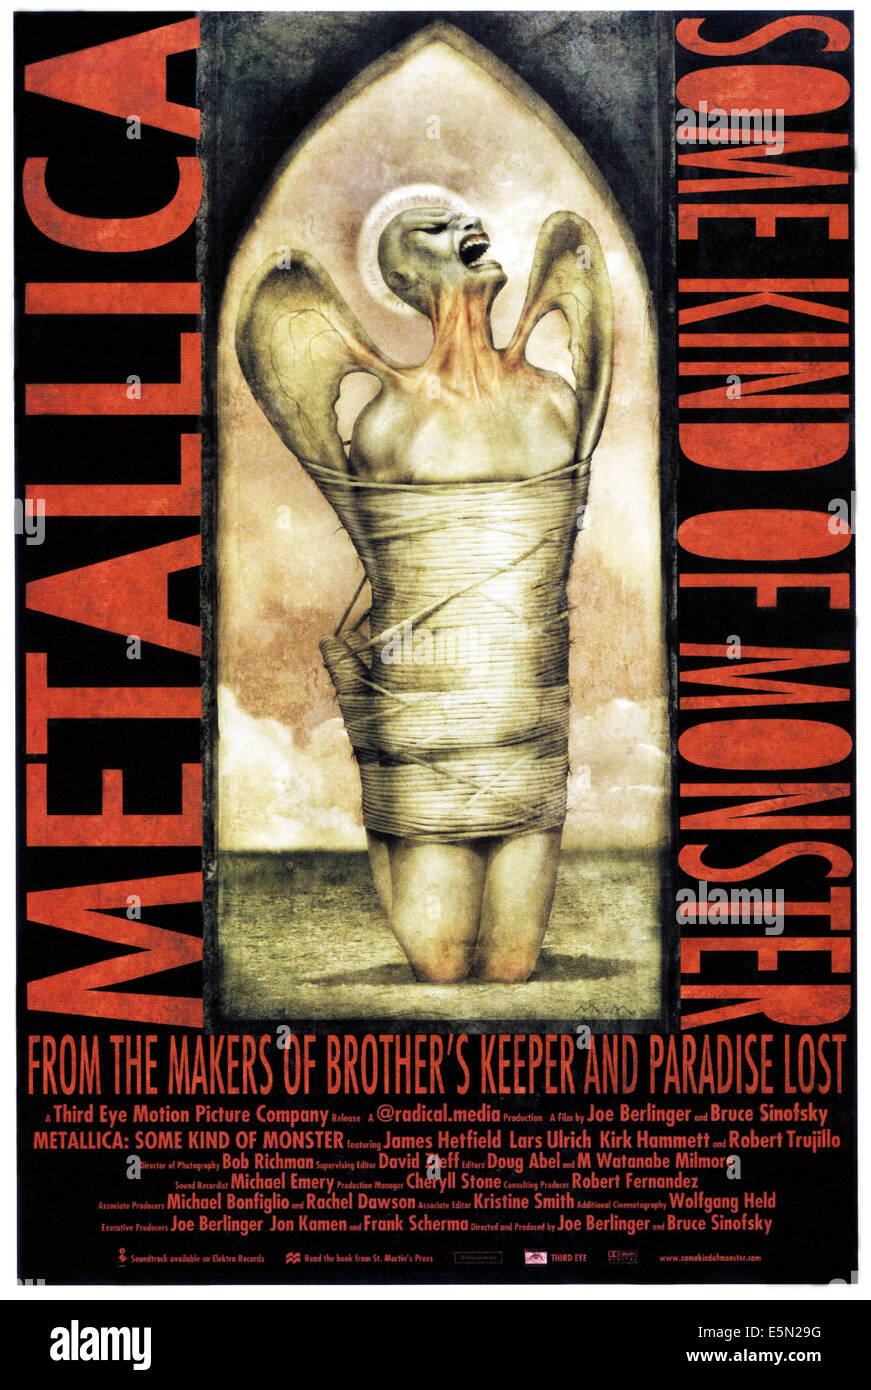 METALLICA: SOME KIND OF MONSTER, poster art, 2004, ©IFC Films/courtesy Everett Collection - Stock Image